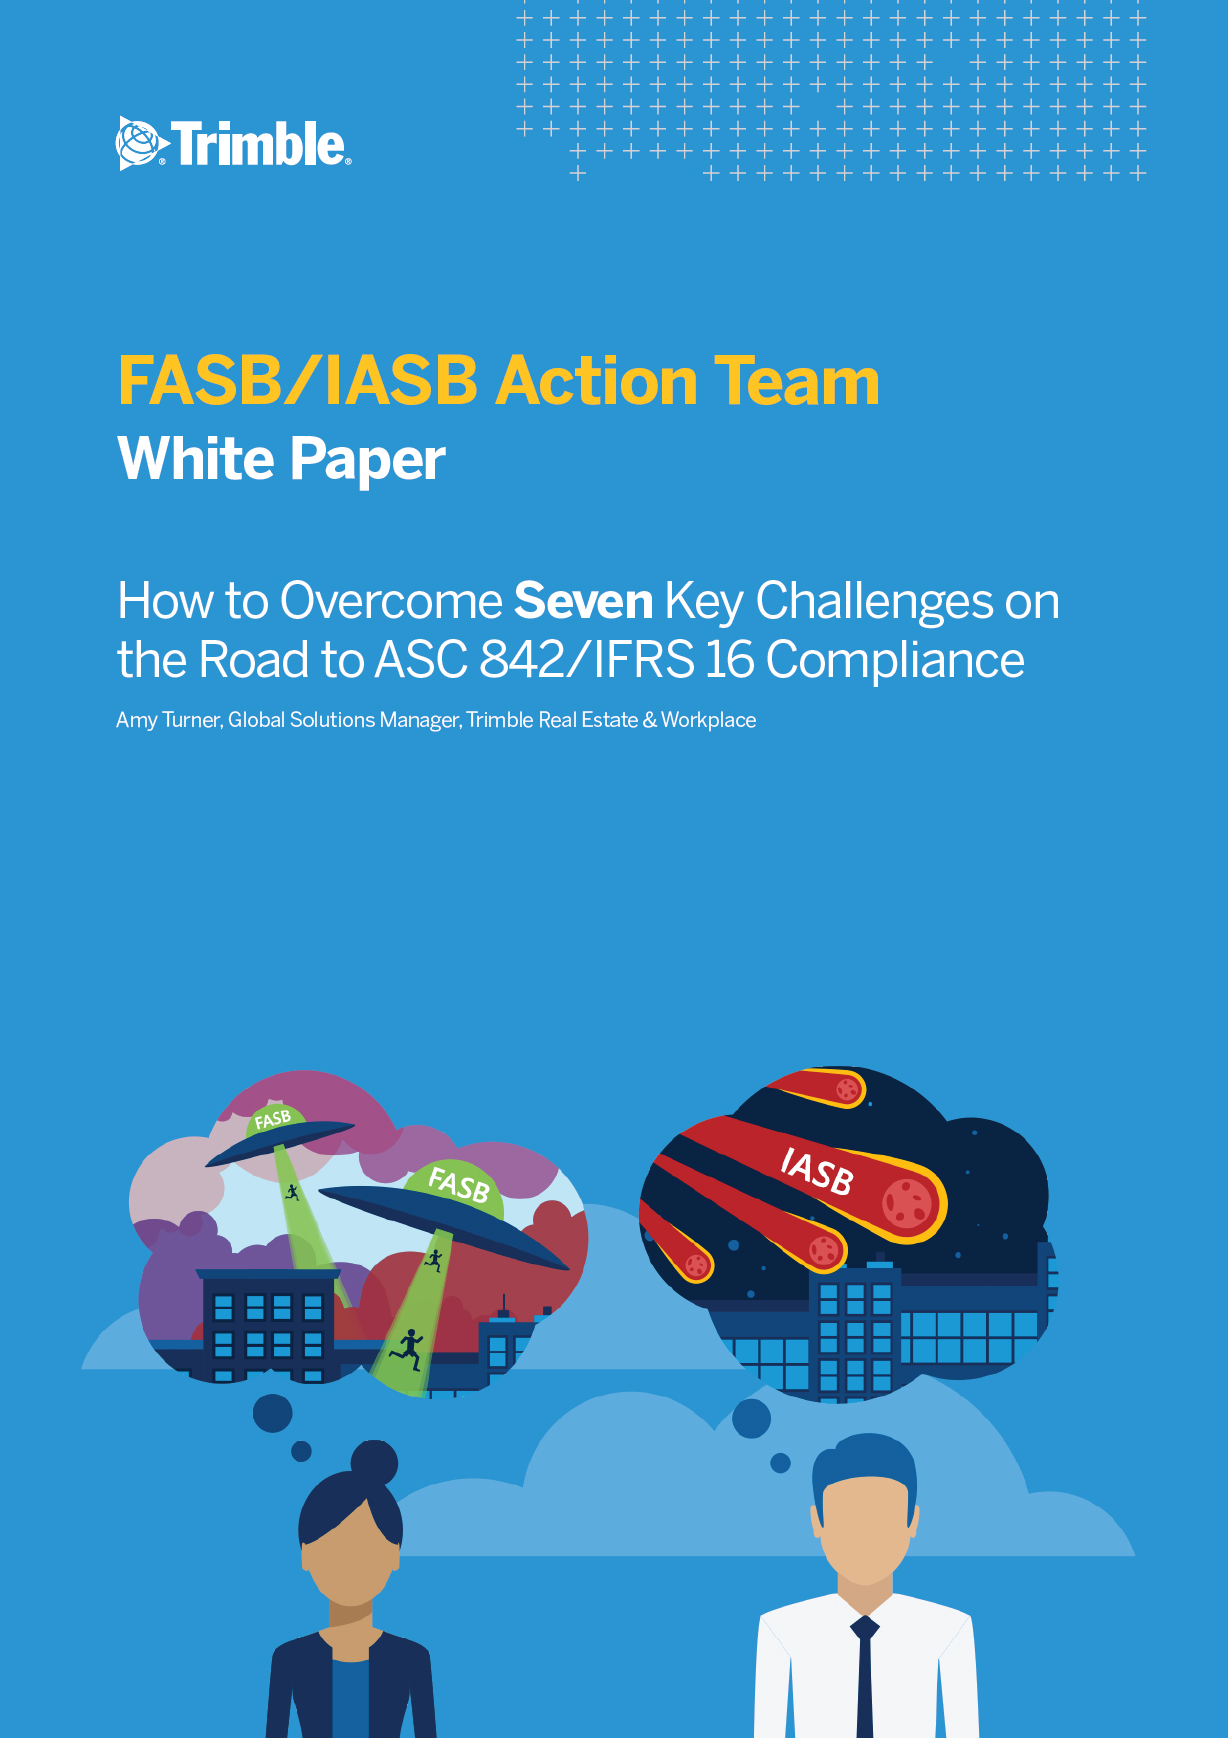 ASC 842 & IFRS 16 Challenges